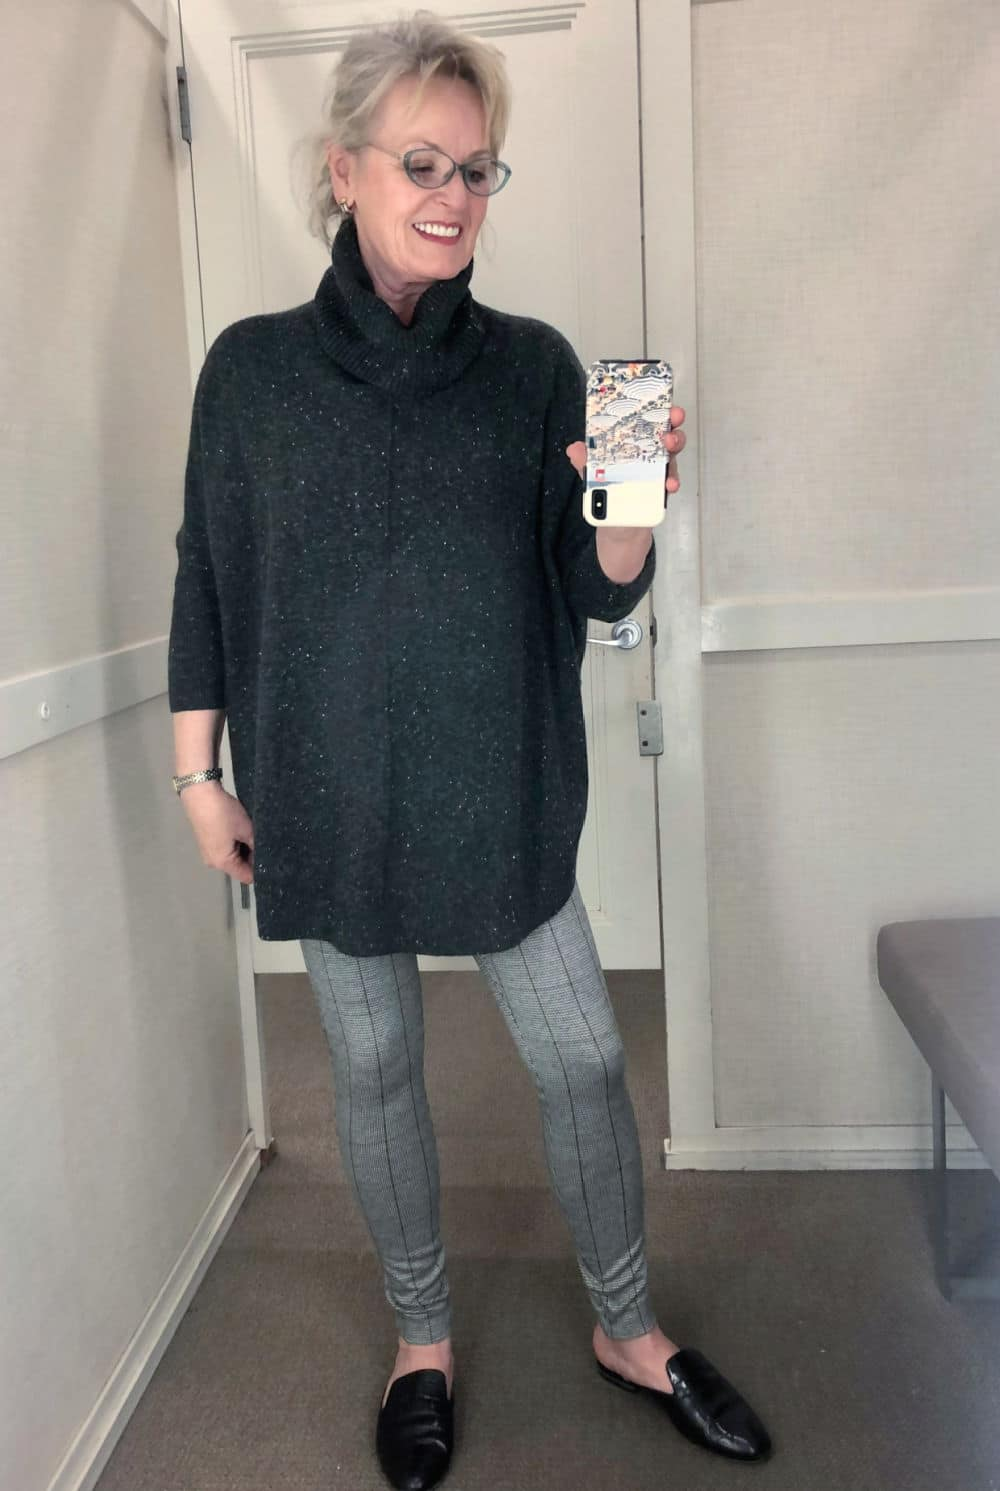 jennifer of a well styled life wearing flecked sweater and checked leggings in Loft dressing room